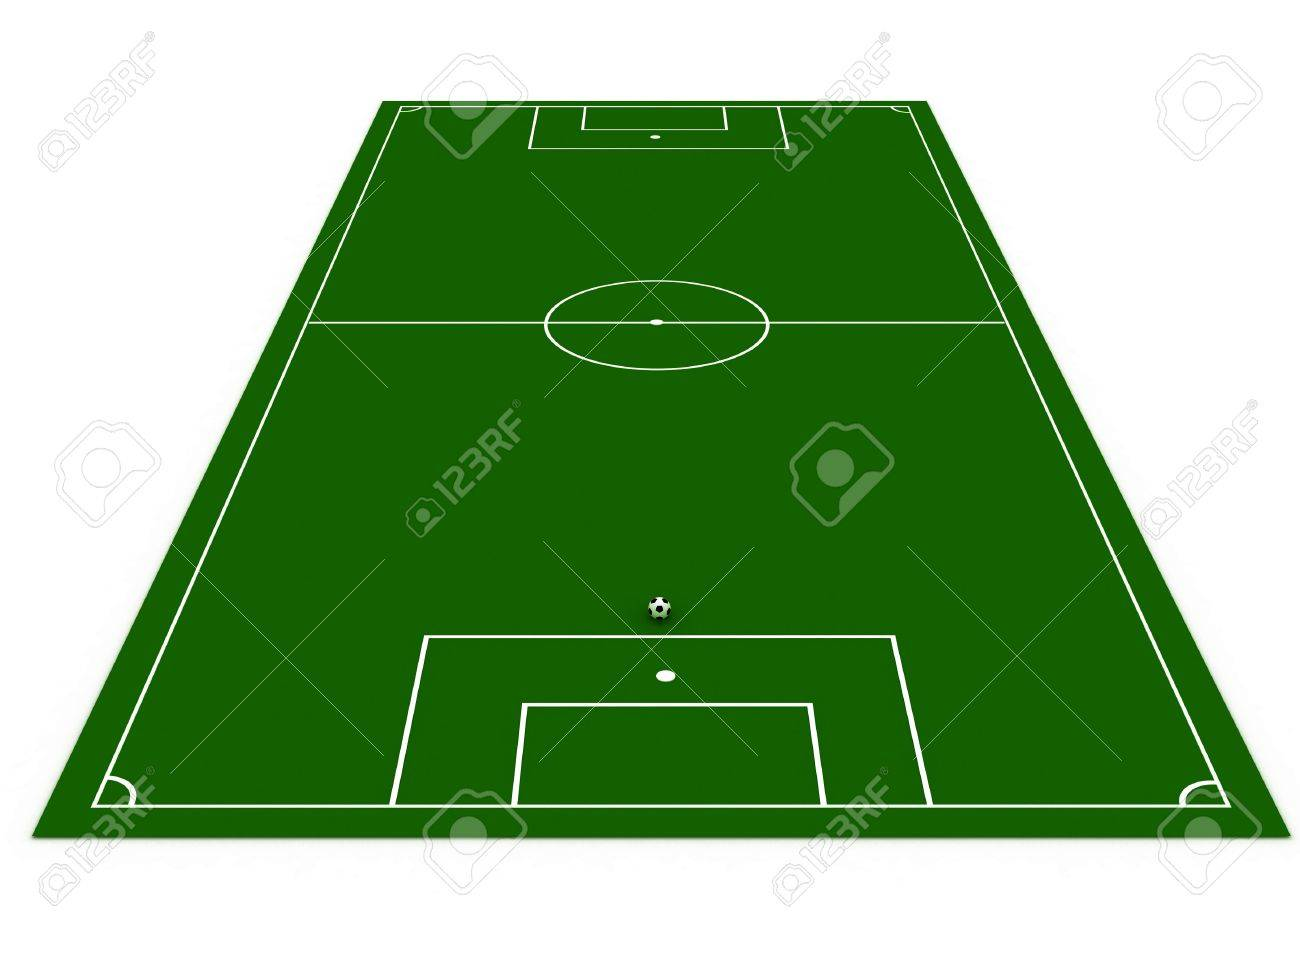 1300x975 Soccer Pitch 3d 3d Football Program Evaluation And Review